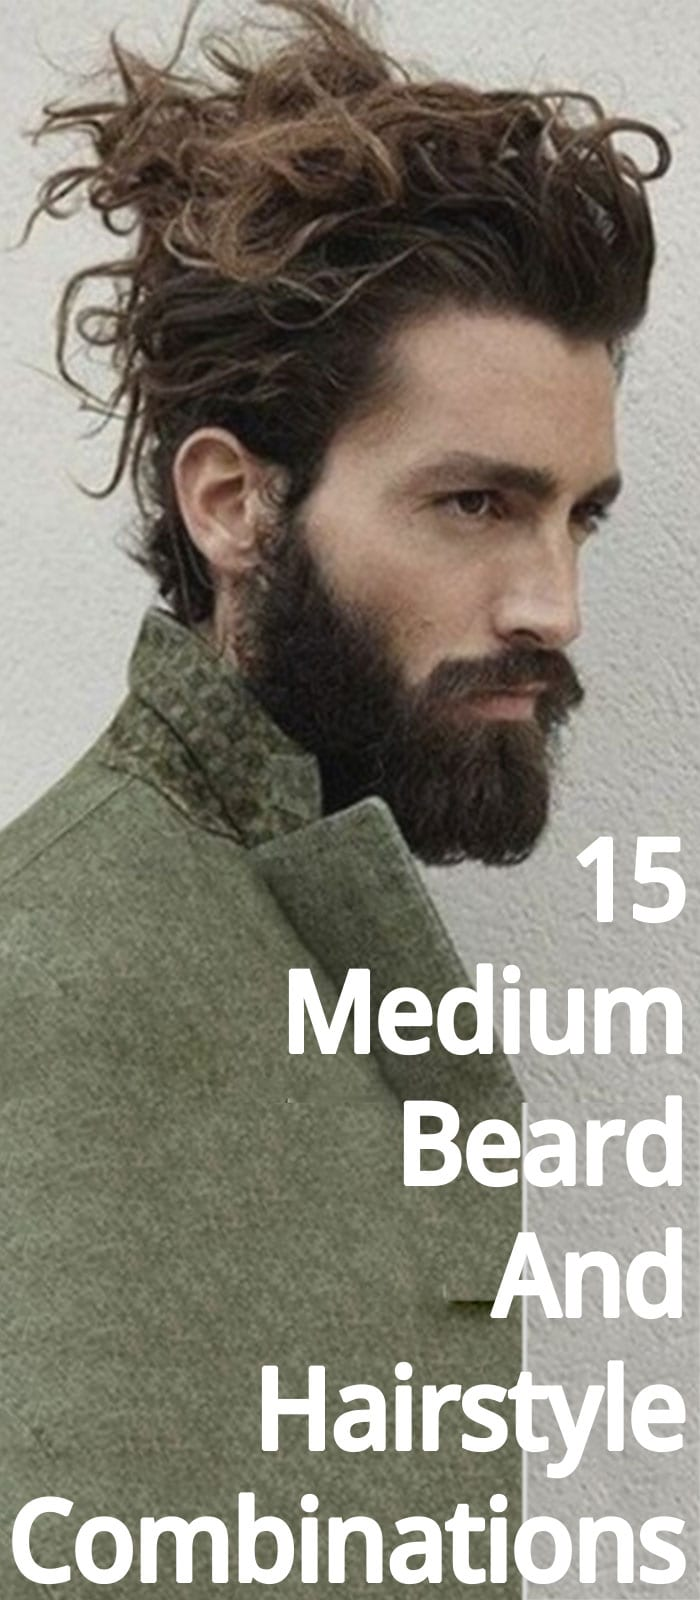 15 Medium Beard And Hairstyle Combinations!